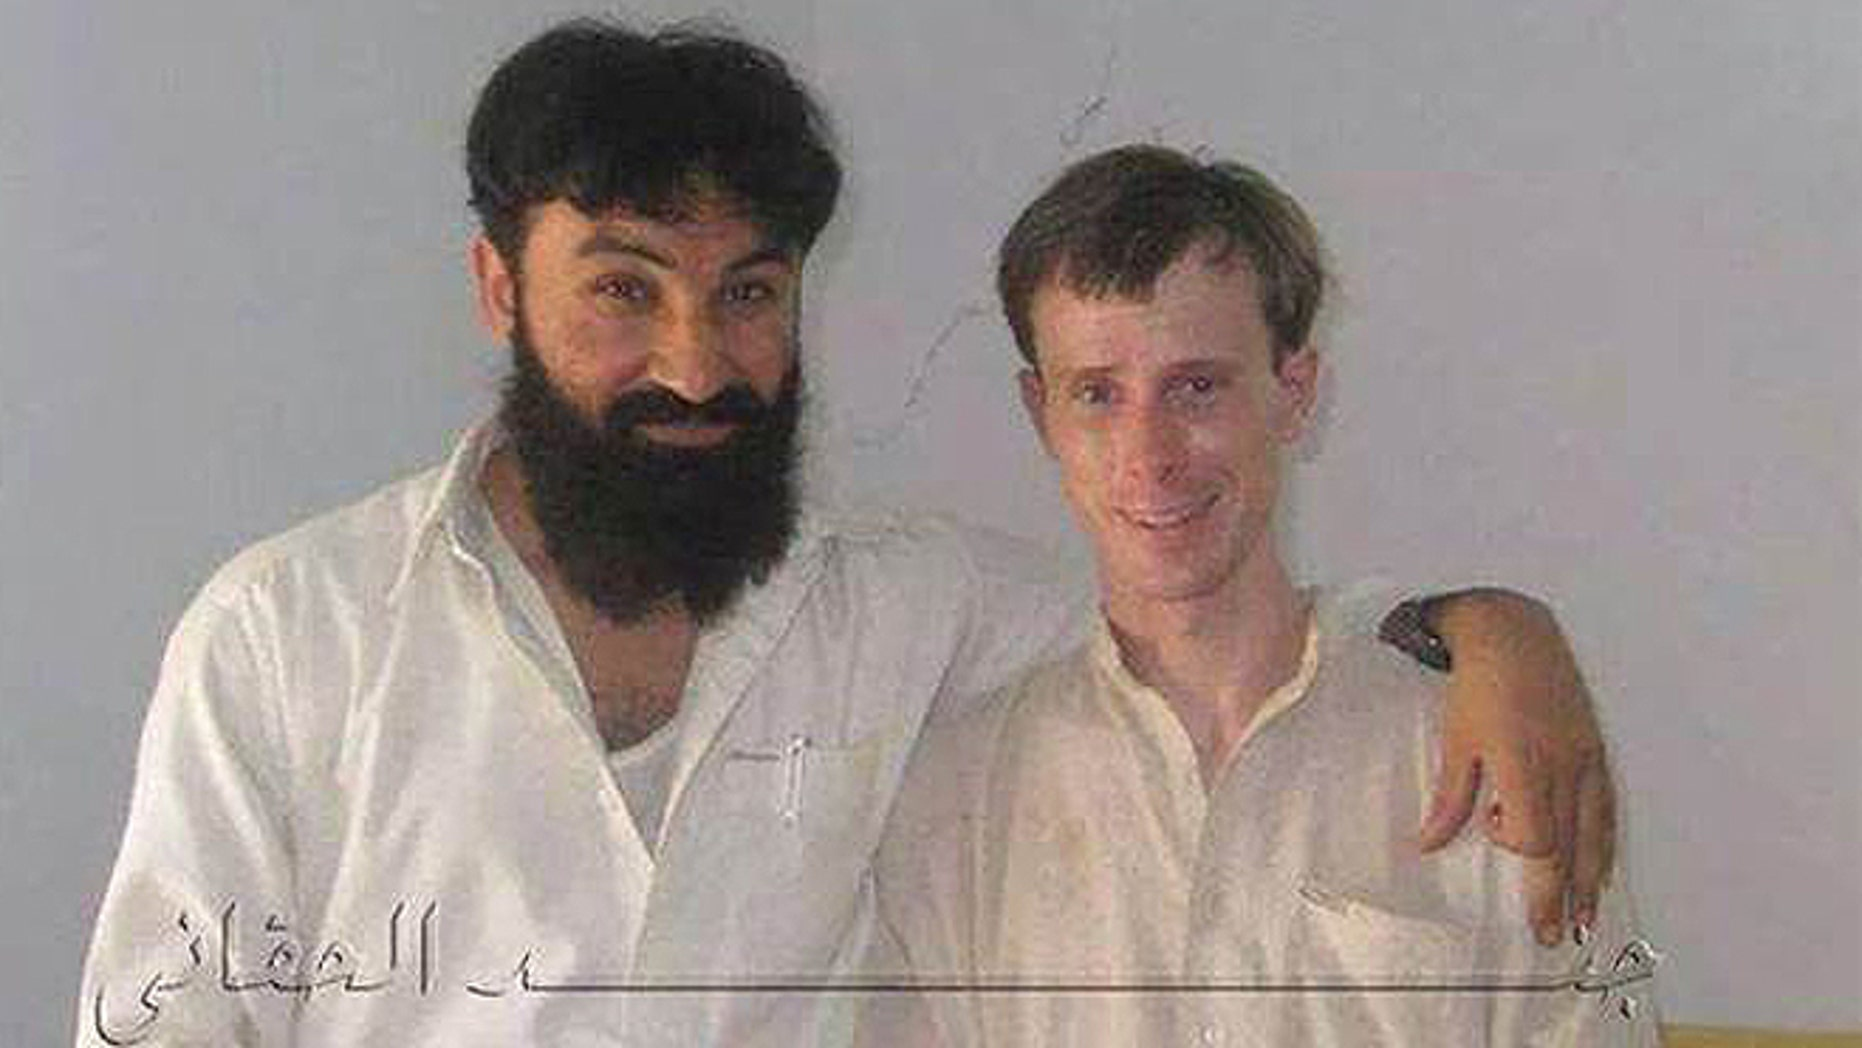 In this undated photo provided my MEMRI, Sgt. Bowe Bergdahl is seen posing with a senior member of the Haqqani network in Afghanistan during his five years in captivity.